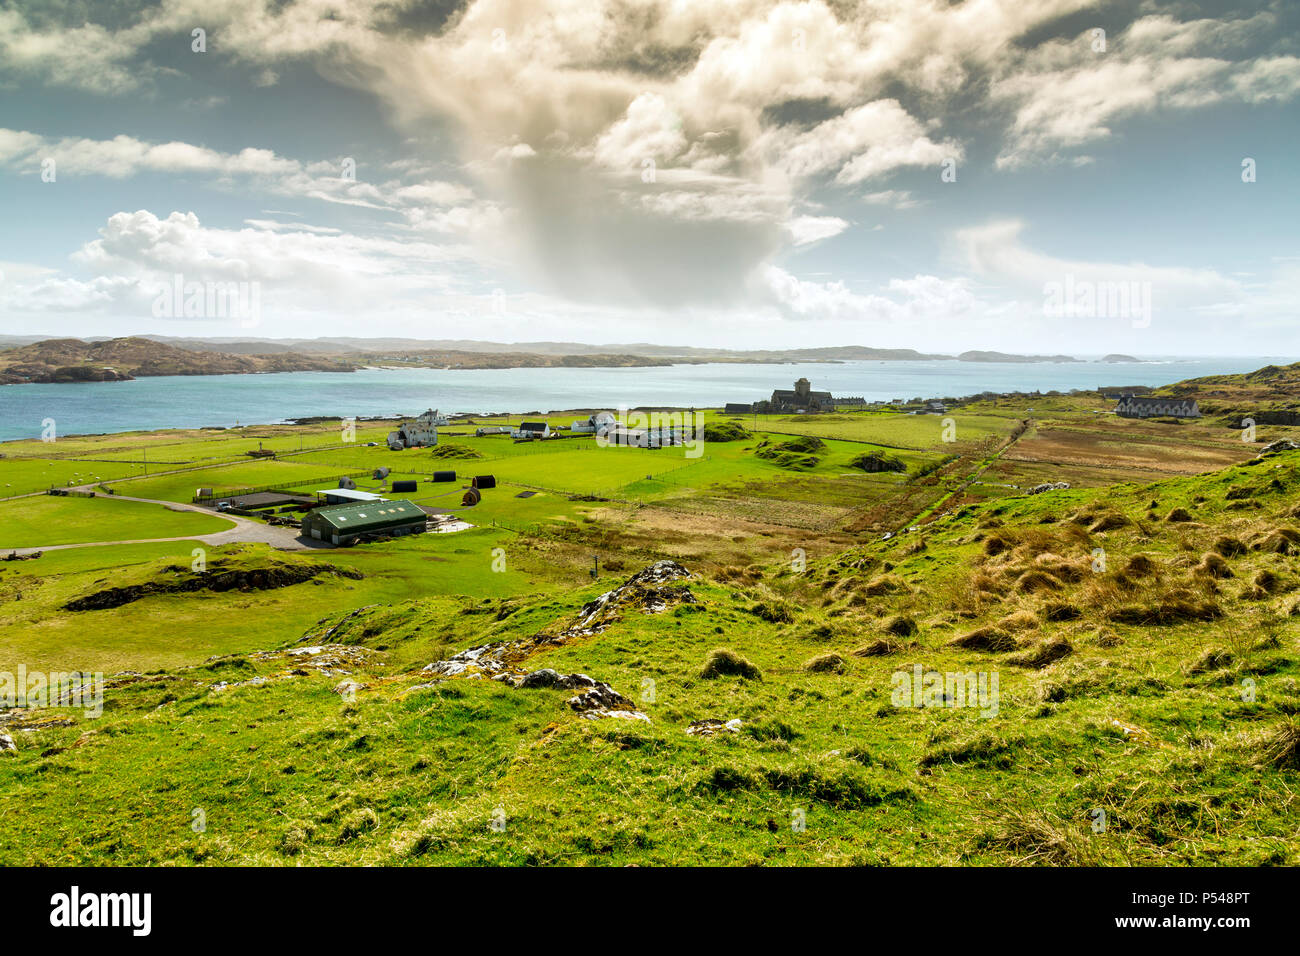 Cumulonimbus clouds over the Sound of Iona, viewed from Dun I (101m) the highest point on the Hebridean island of Iona, Argyll and Bute, Scotland, UK - Stock Image